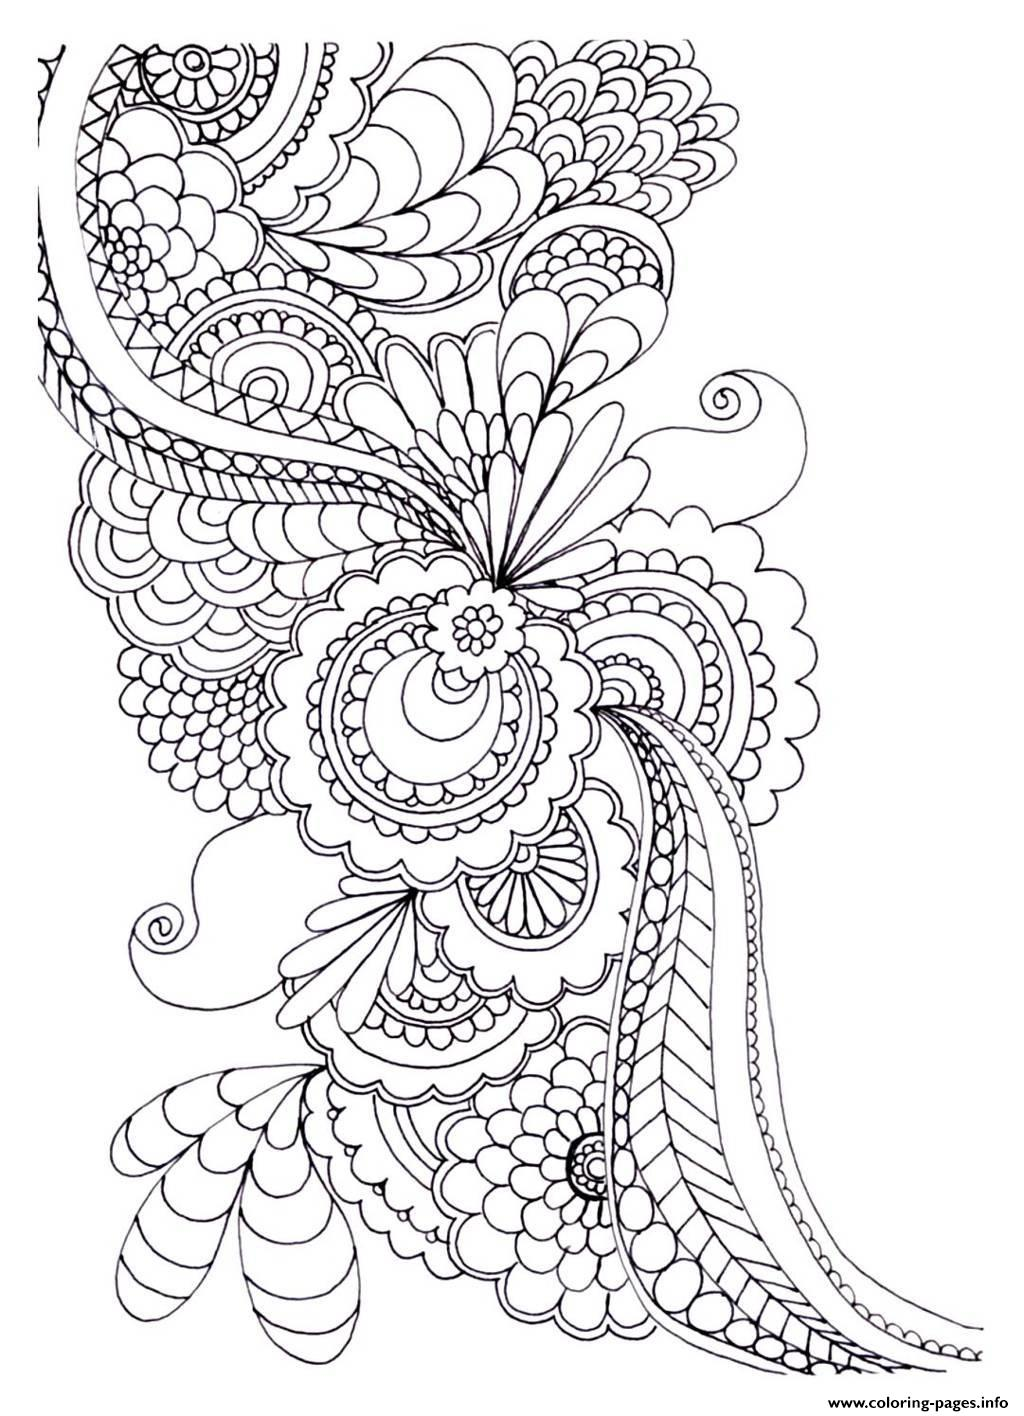 Adult Zen Anti Stress To Print Drawing Flowers Coloring Pages Printable